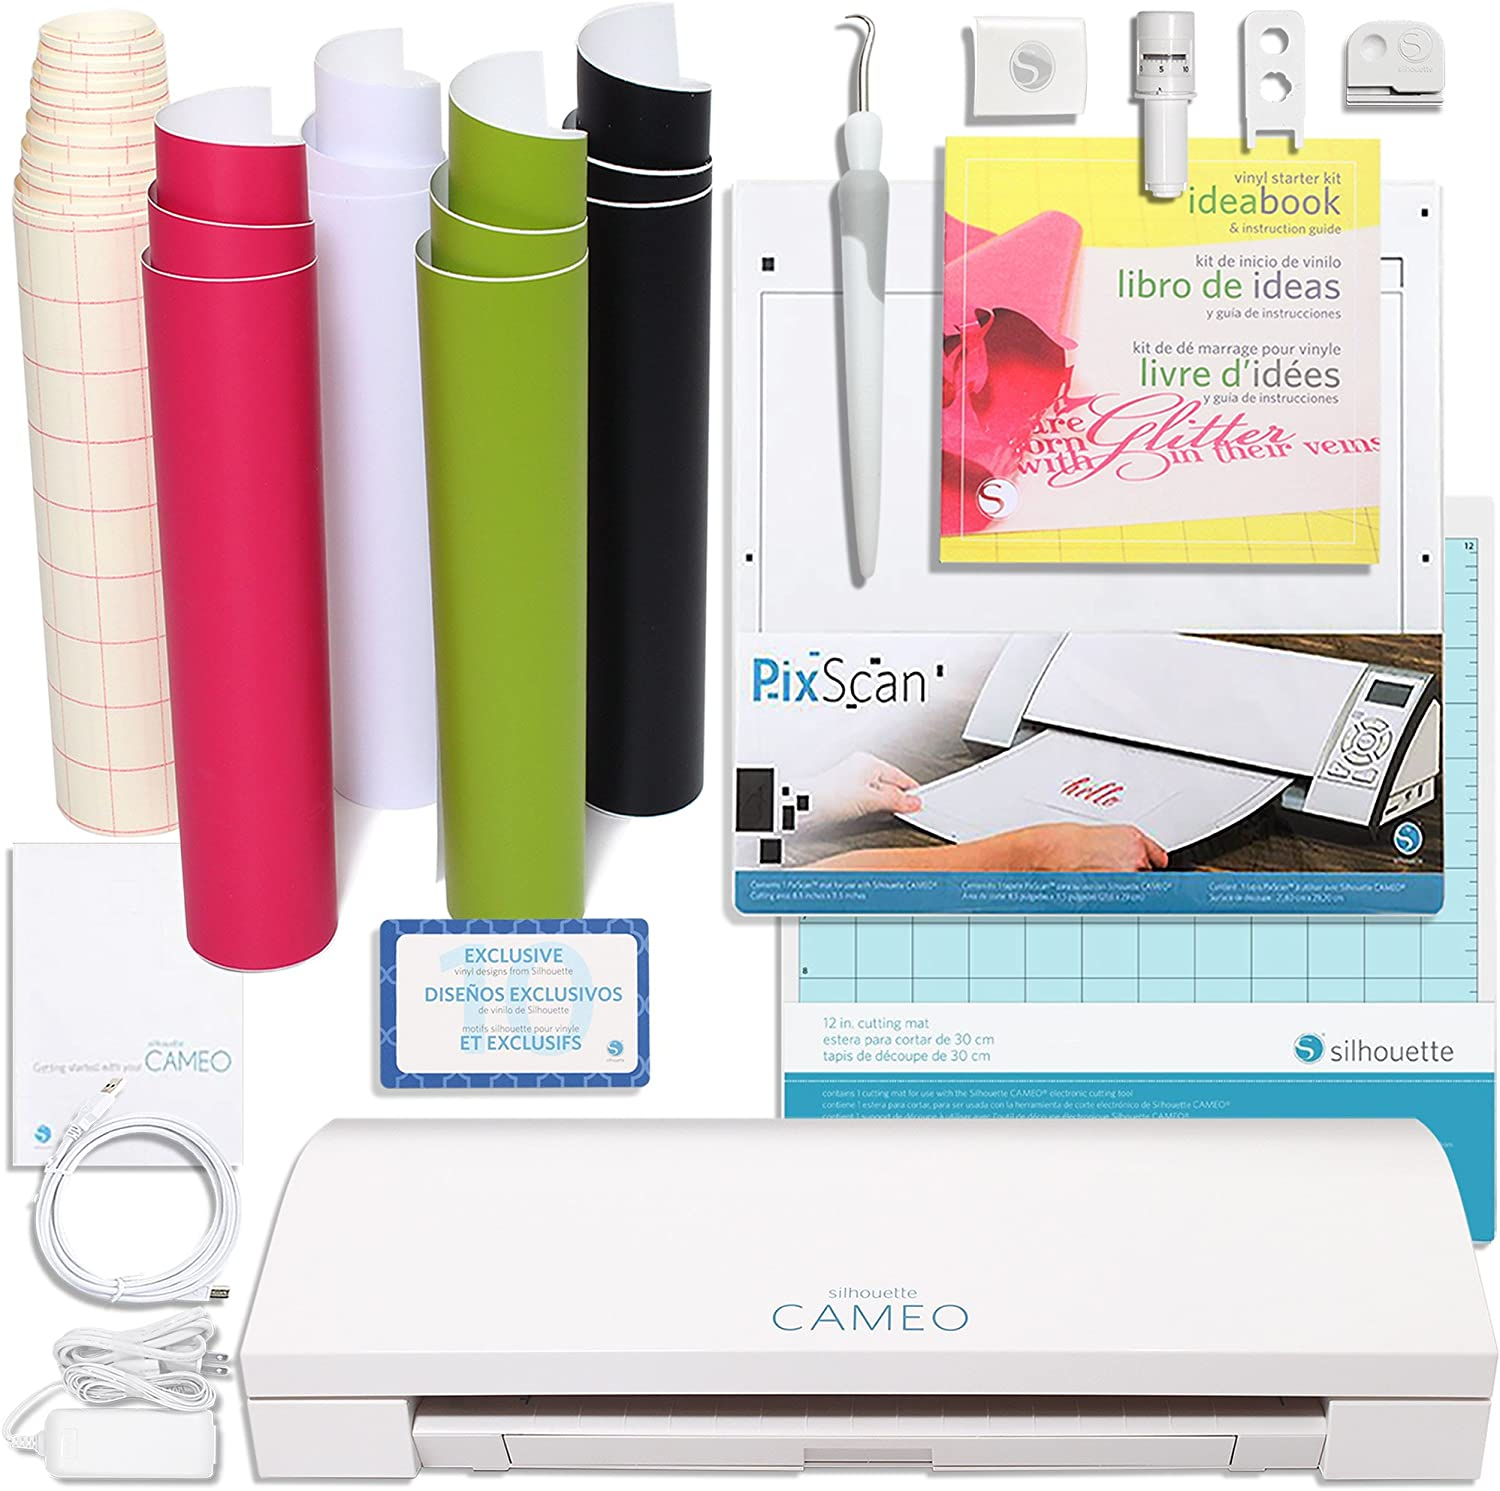 Silhouette America CAMEO-3-AMAZON-BDL-3 Touch Screen, Bluetooth, Vinyl Starter Kit with PixScan Cutting Mat by Silhouette America: Amazon.es: Hogar